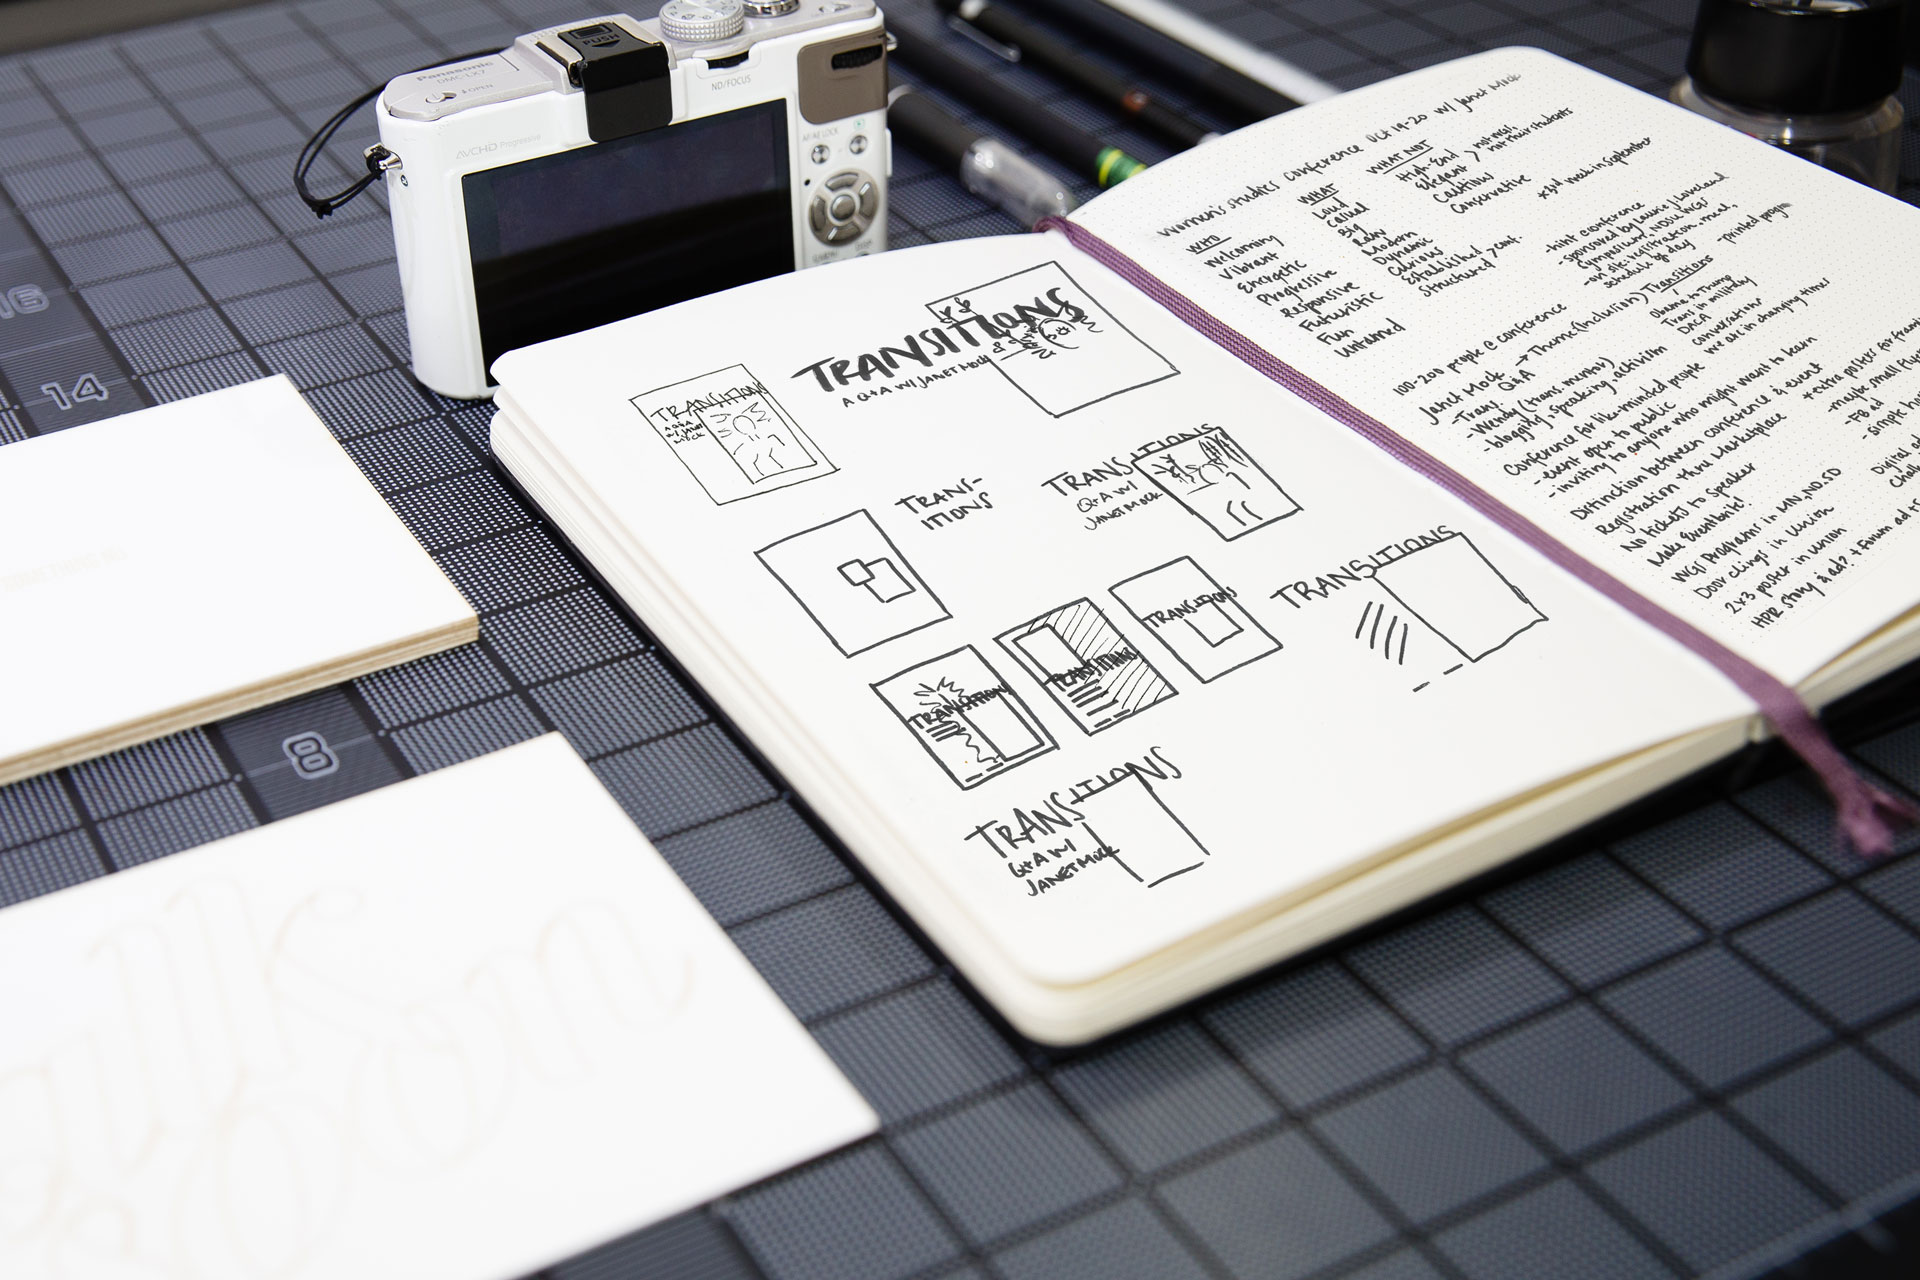 Sketchbook of design concepts next to a white camera and white cards atop a black gridded surface